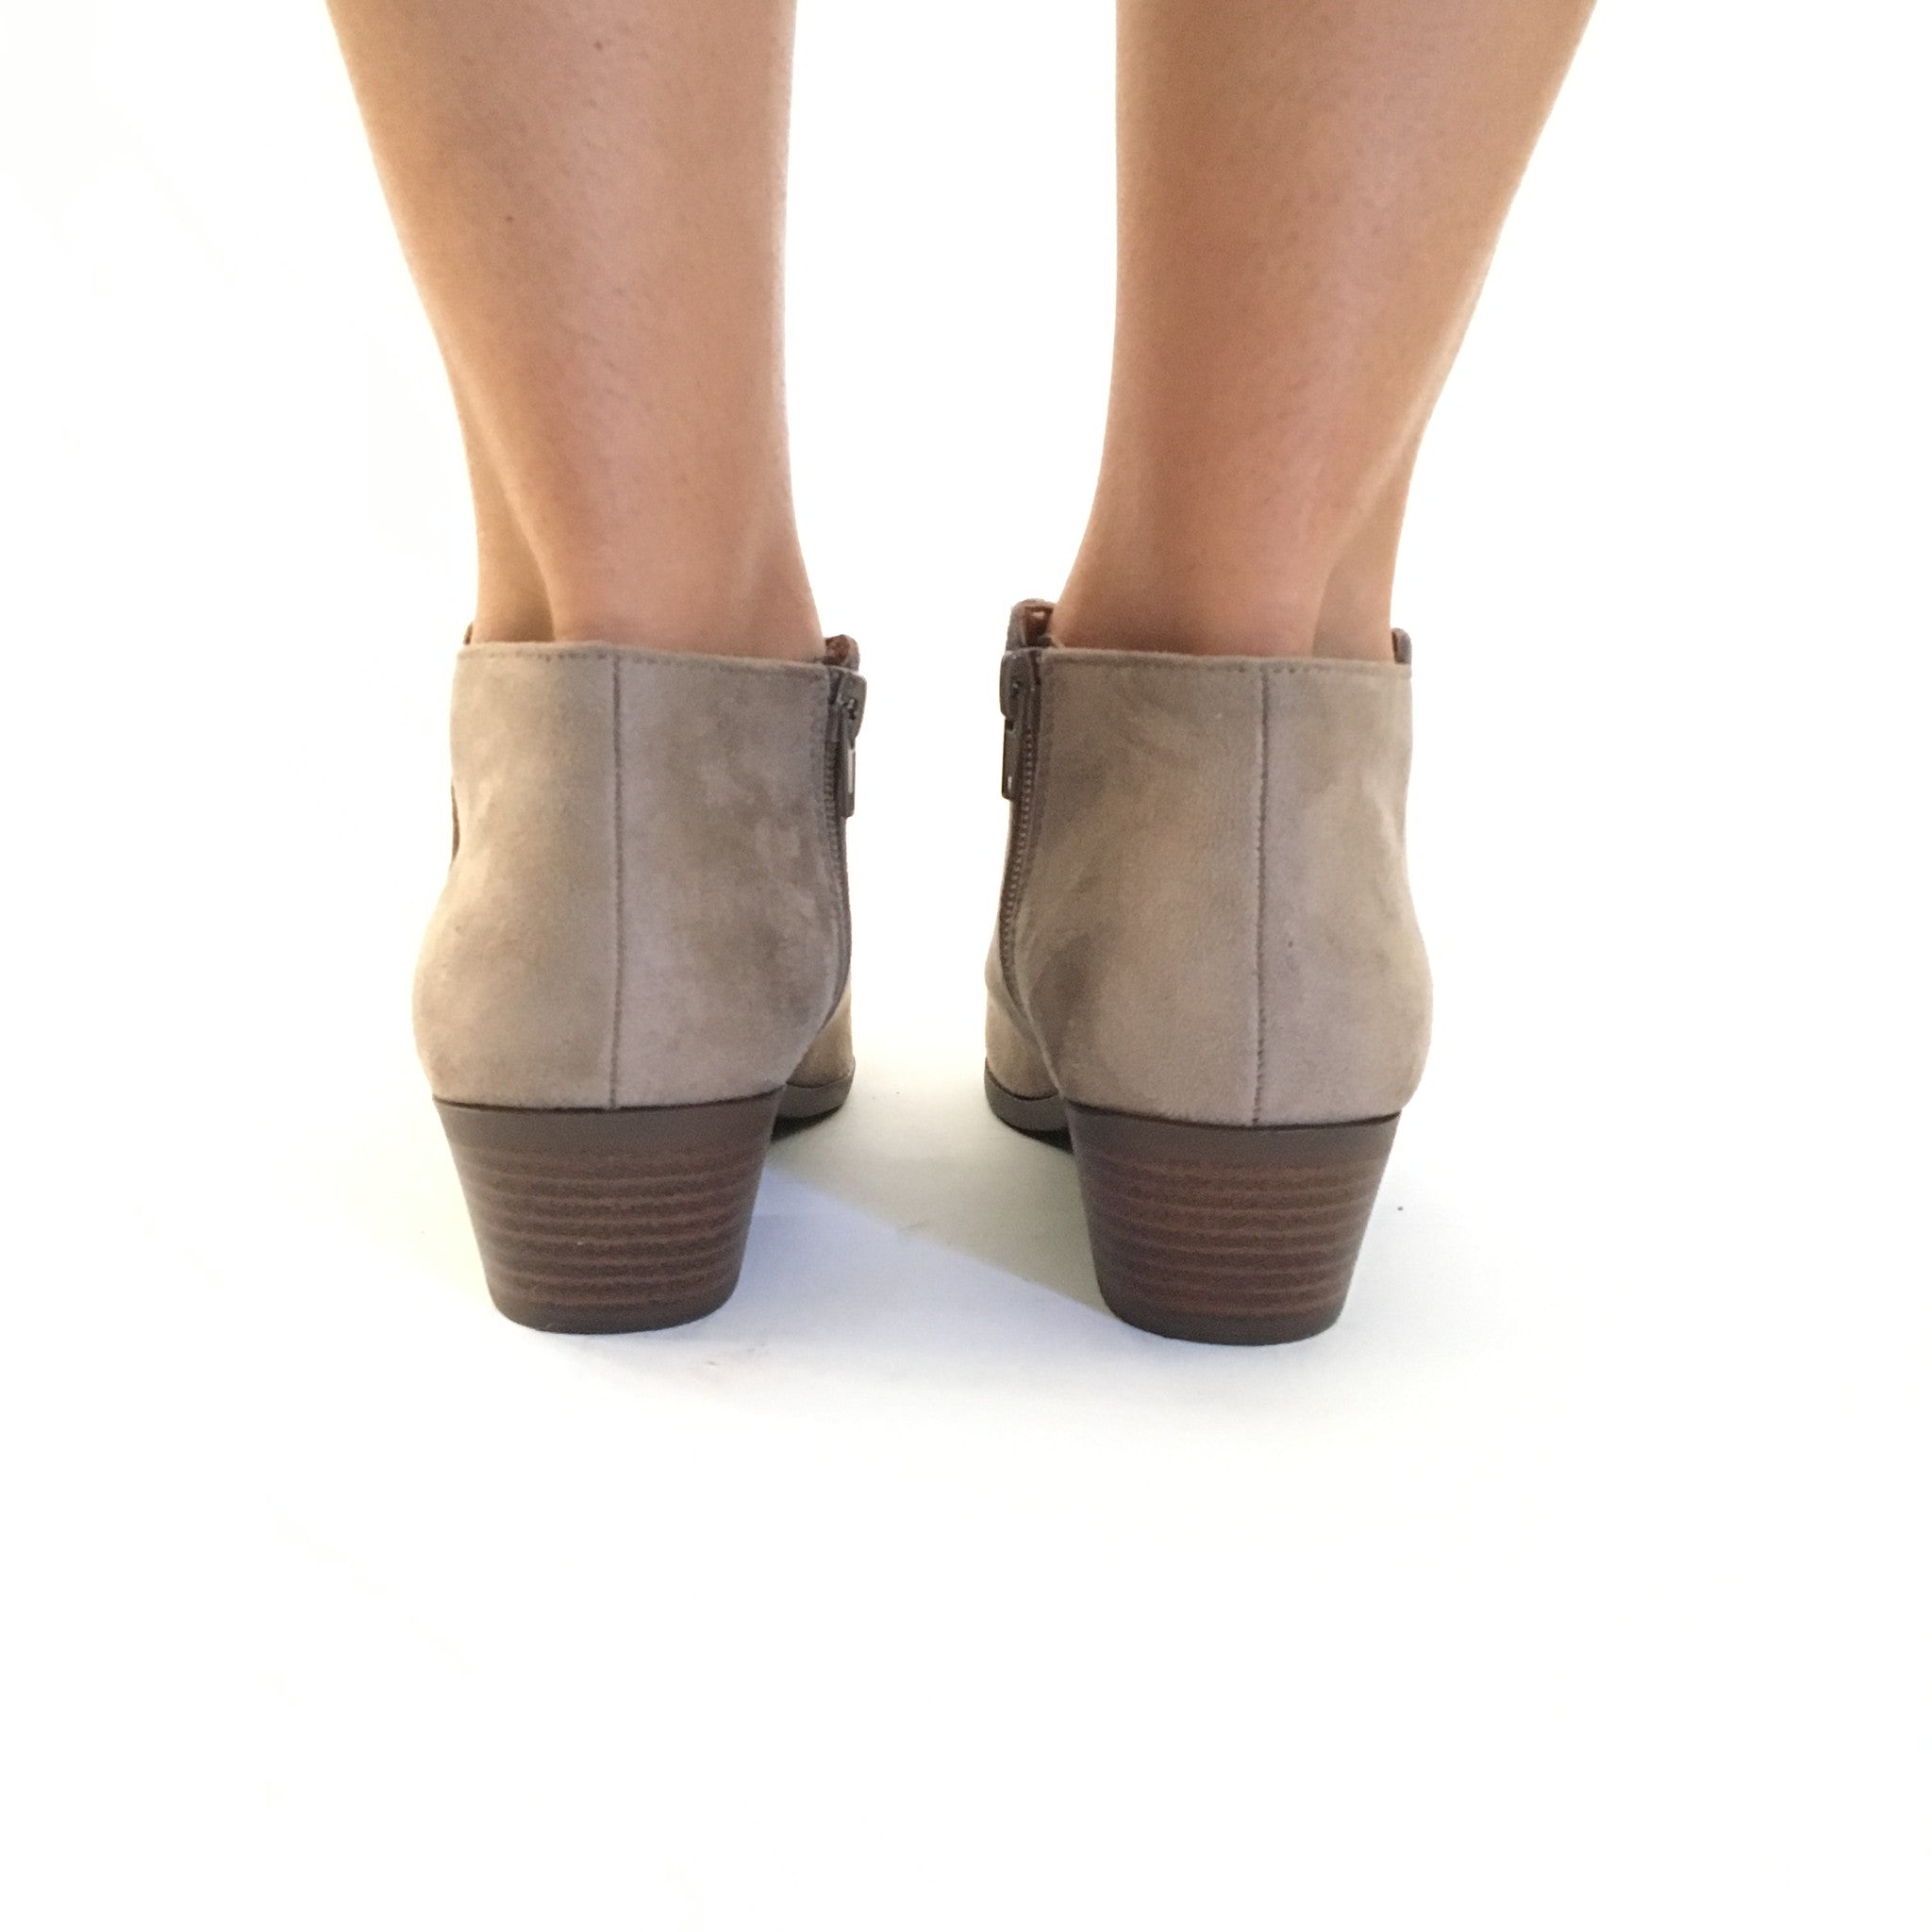 comforter comfortable by so i that booties shoes are am stylish introduce to cradles bootie for excited and neve walking you